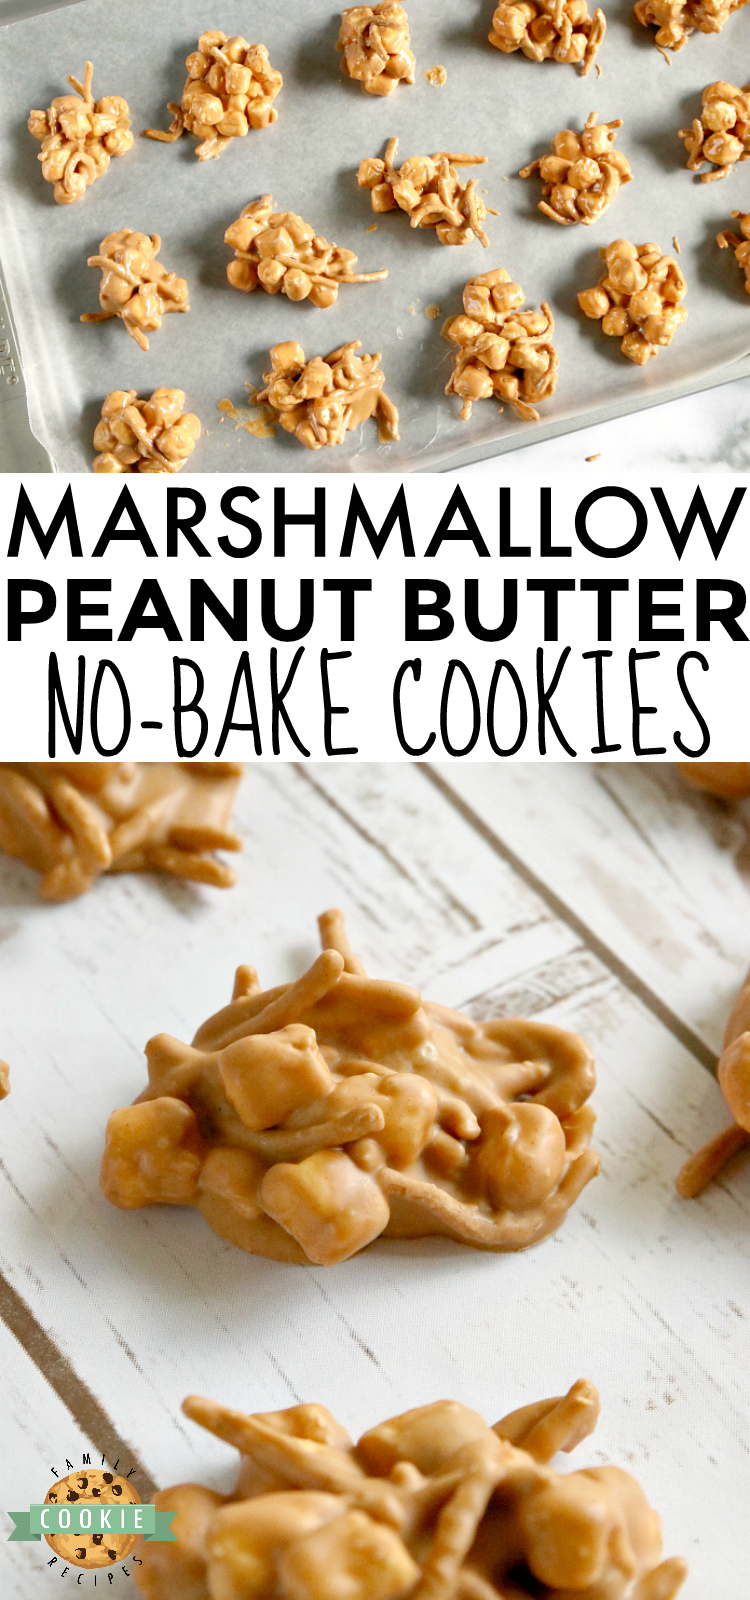 Marshmallow Peanut Butter No Bake Cookies are made with only 4 ingredients - marshmallows, peanut butter, butterscotch chips and chow mein noodles! via @buttergirls